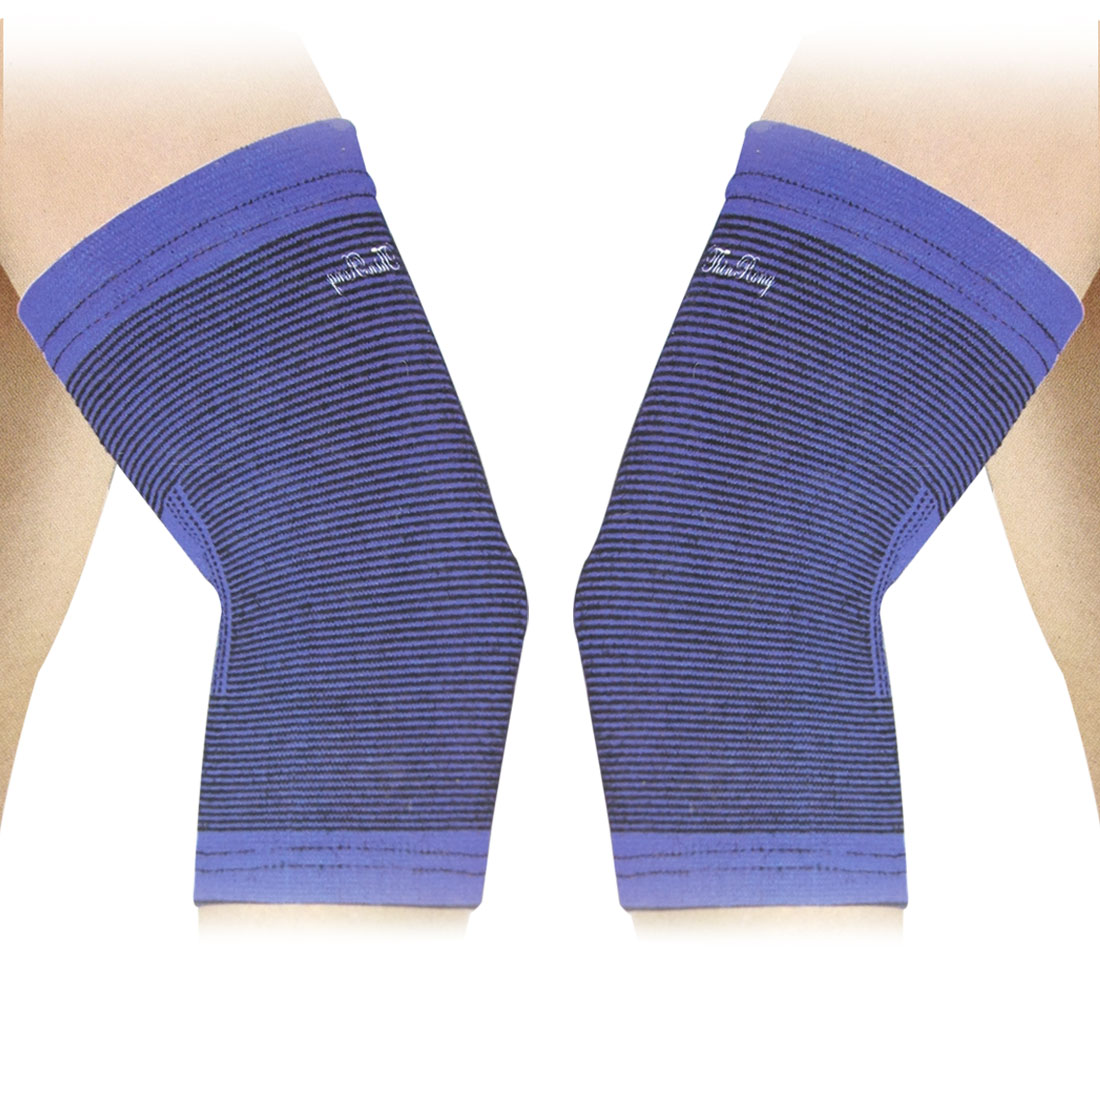 Sports Wear Stretchy Protective Sleeve Elbow Support Brace Blue Black 2 Pcs